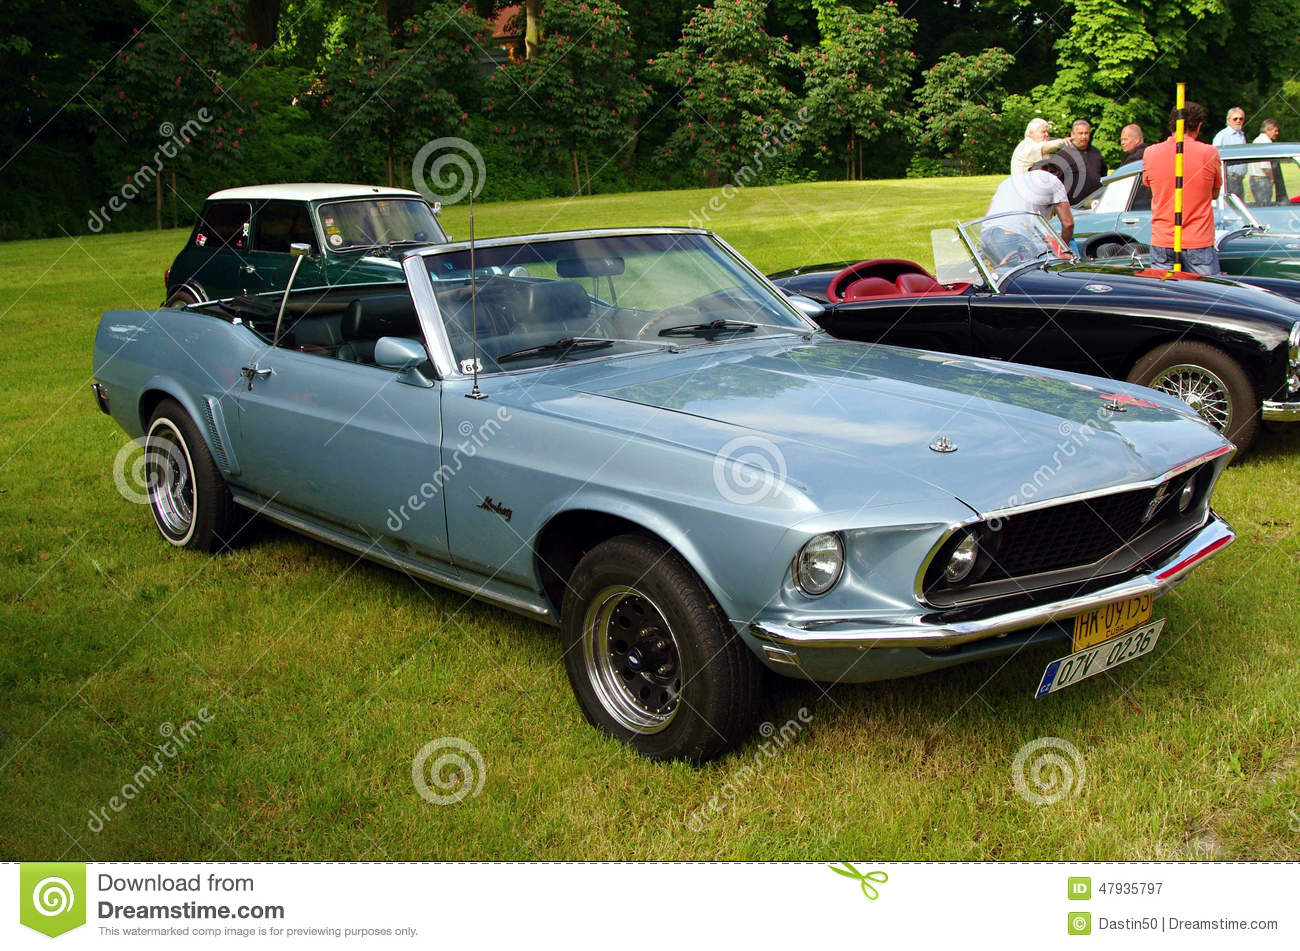 voiture ancienne ford mustang photographie ditorial. Black Bedroom Furniture Sets. Home Design Ideas